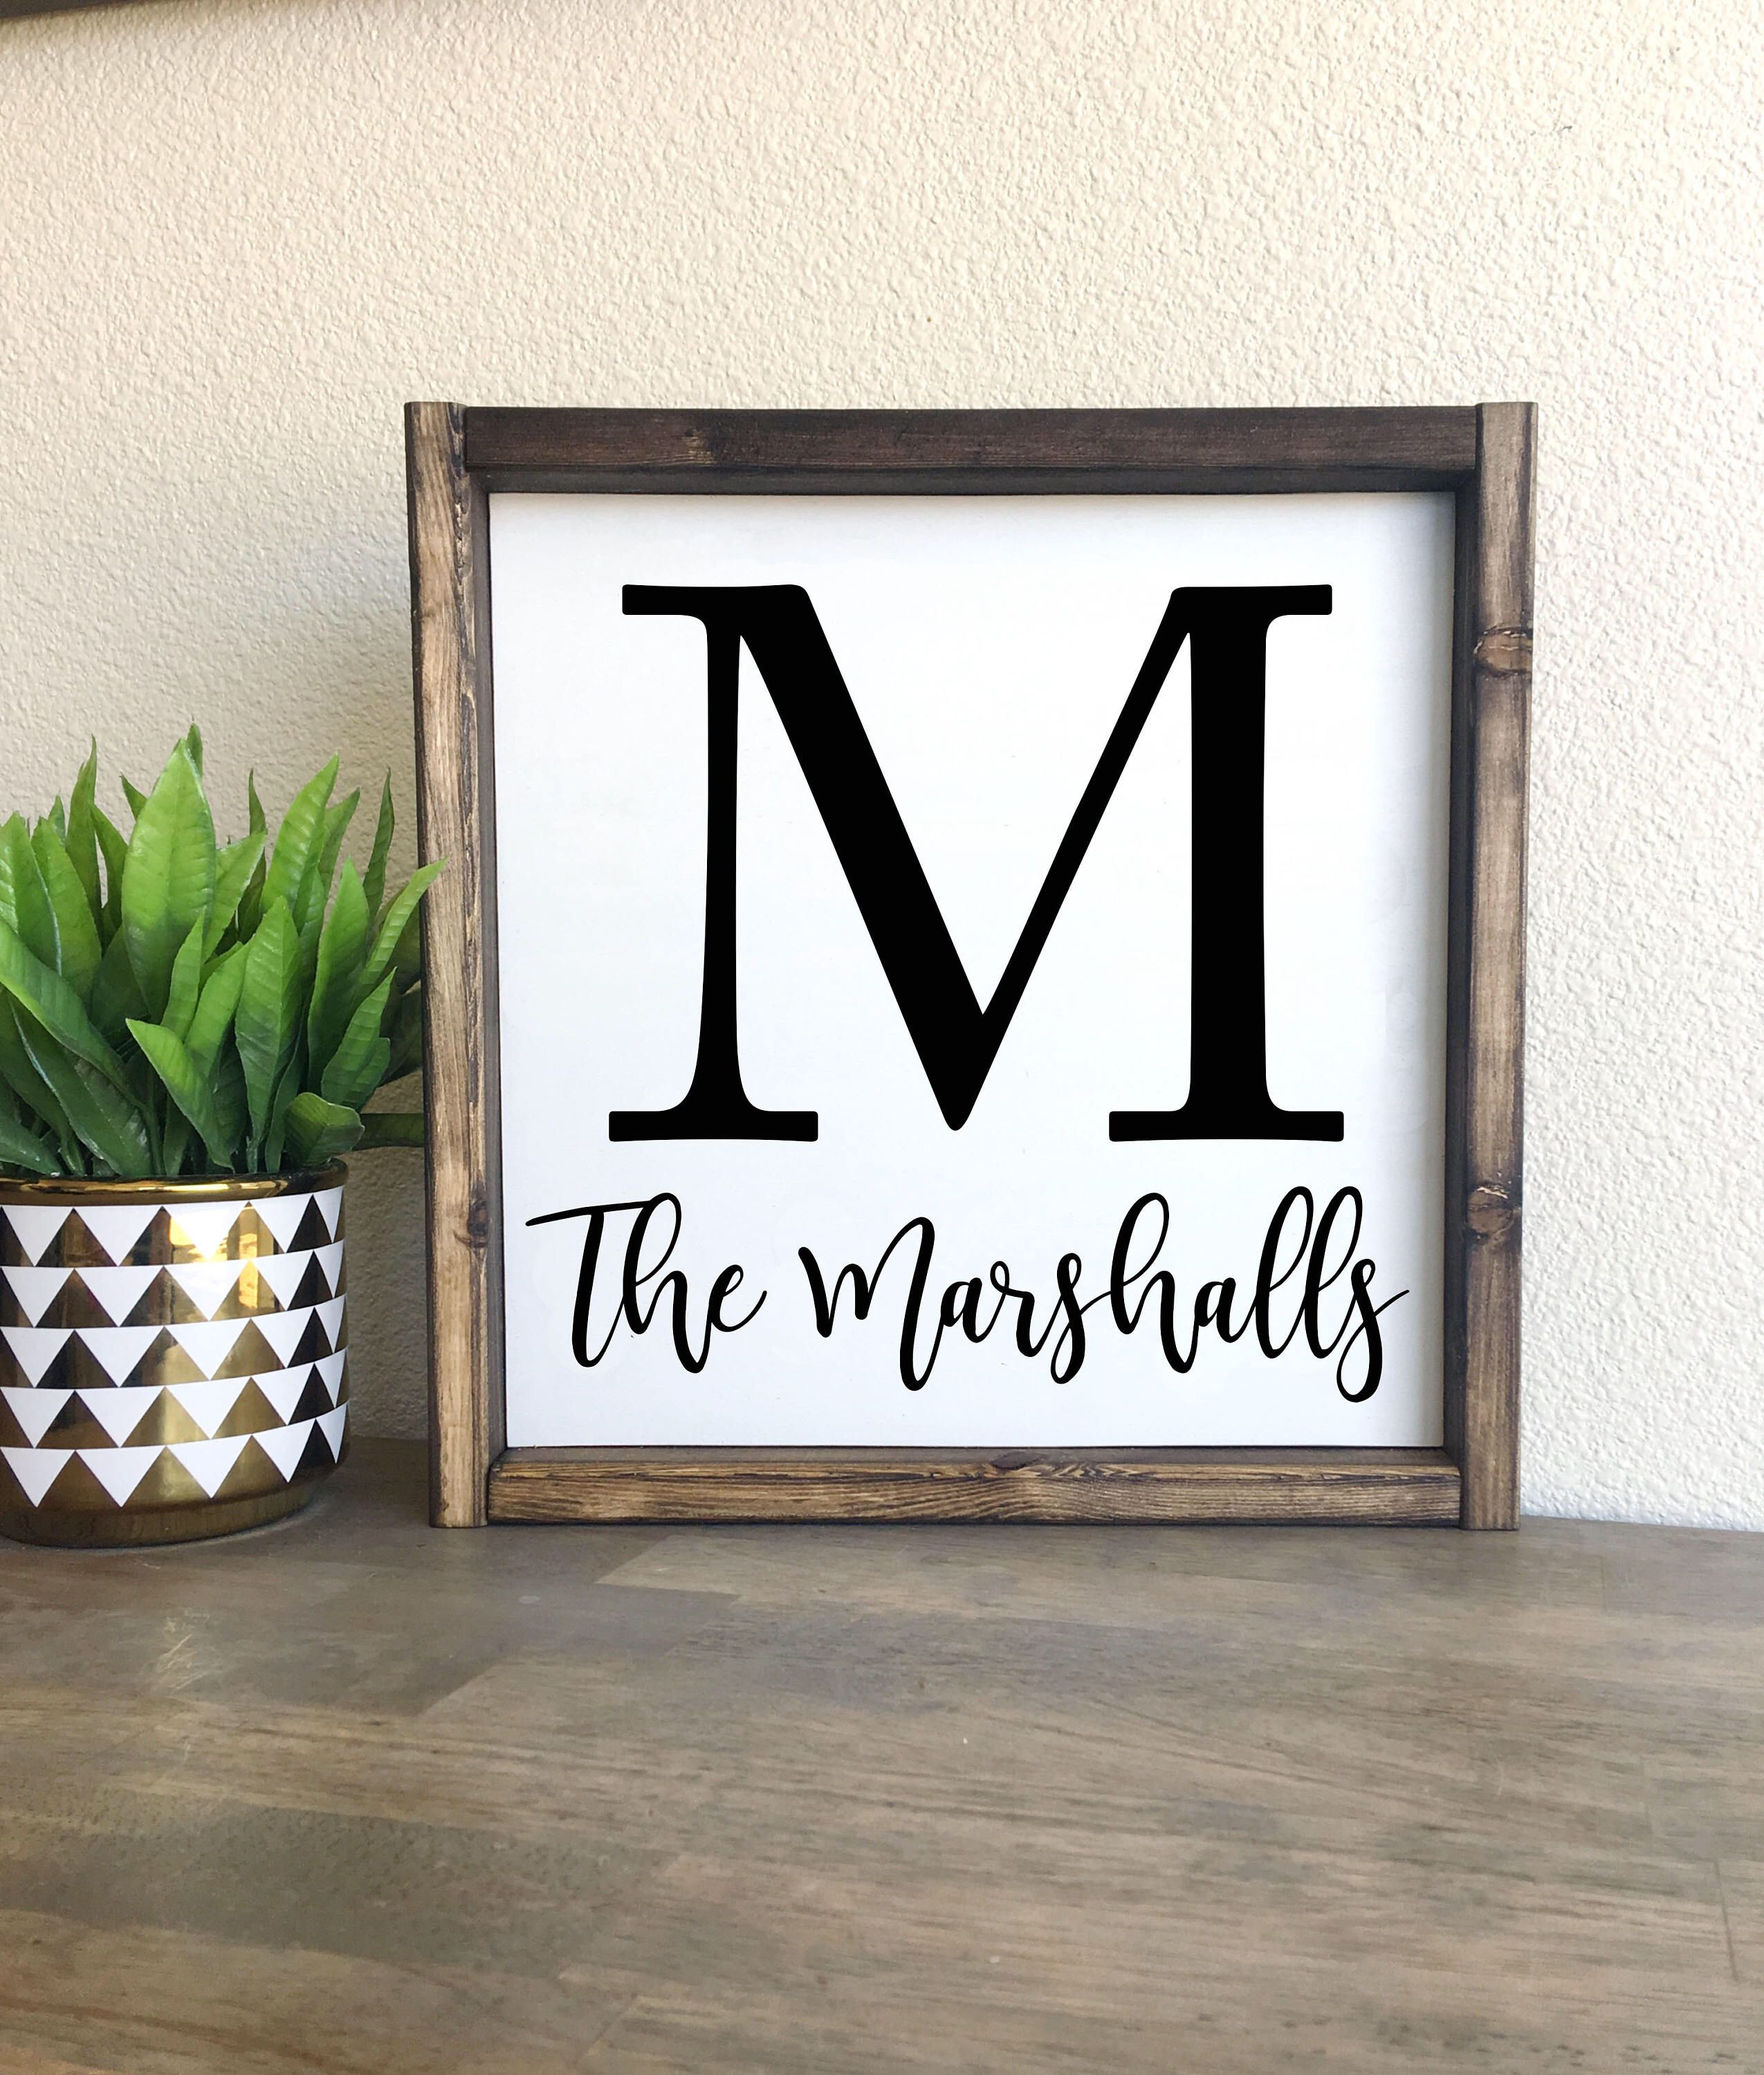 Last name | Custom name sign | Framed wood sign | Wood signs, Woods ...